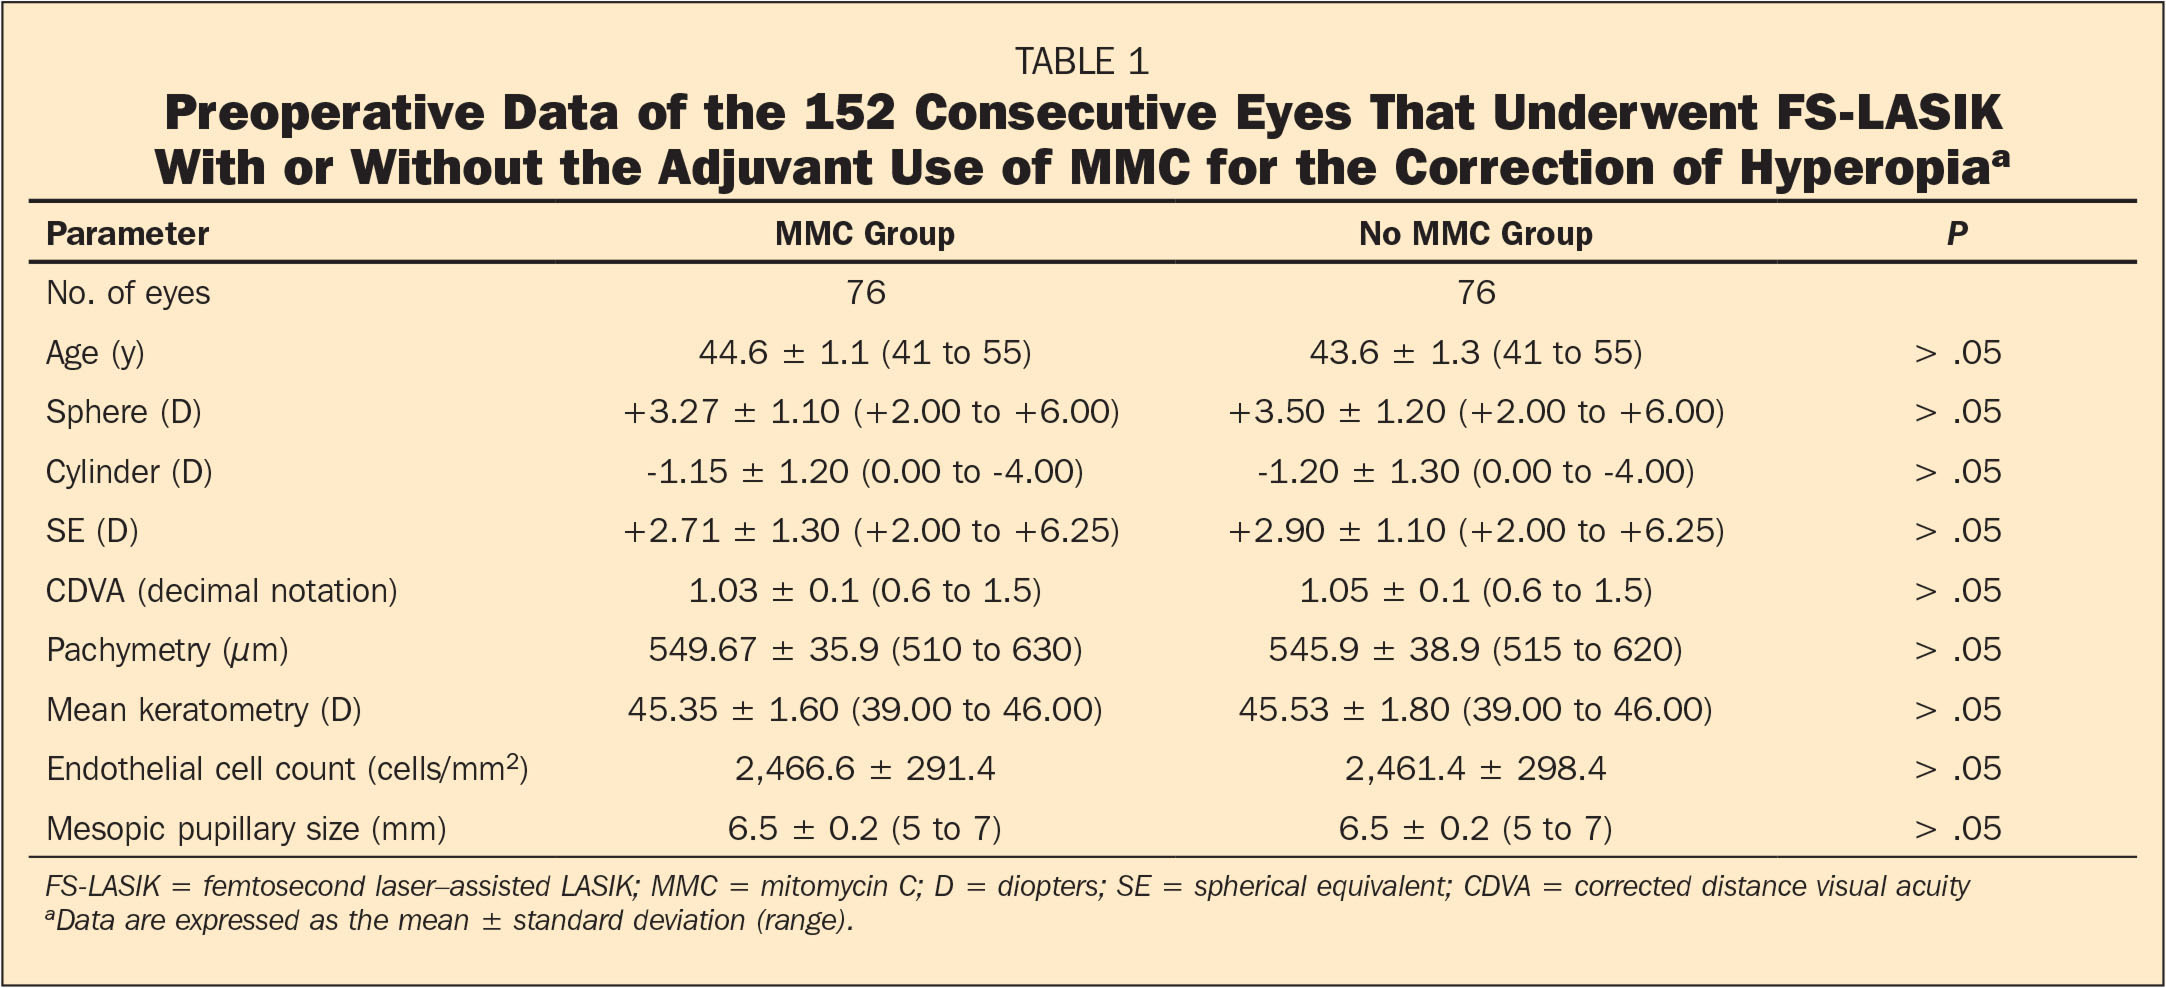 Preoperative Data of the 152 Consecutive Eyes That Underwent FS-LASIK With or Without the Adjuvant Use of MMC for the Correction of Hyperopiaa